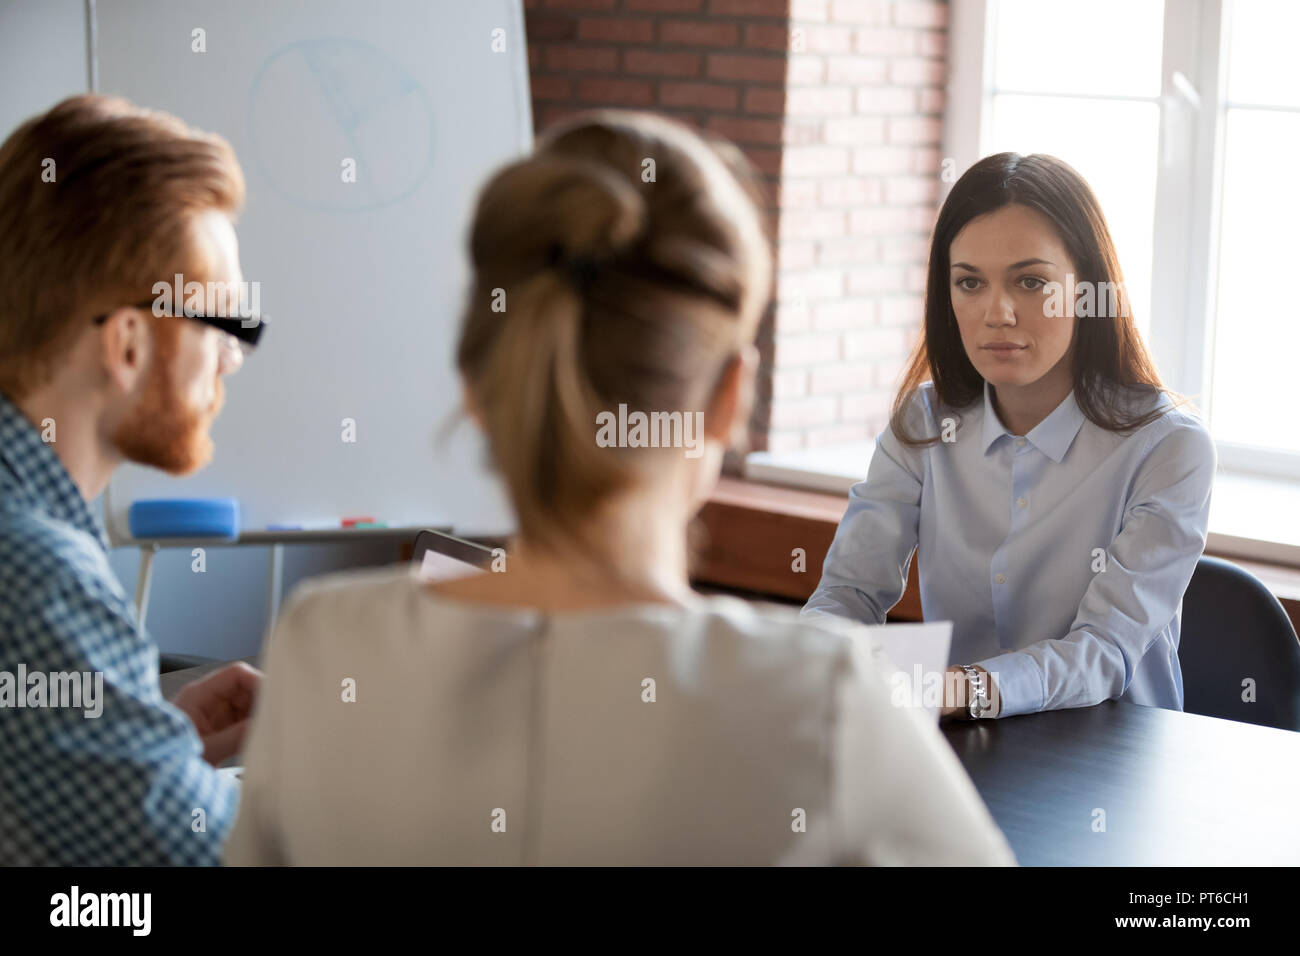 Serious female boss listening to employees reporting about work  - Stock Image